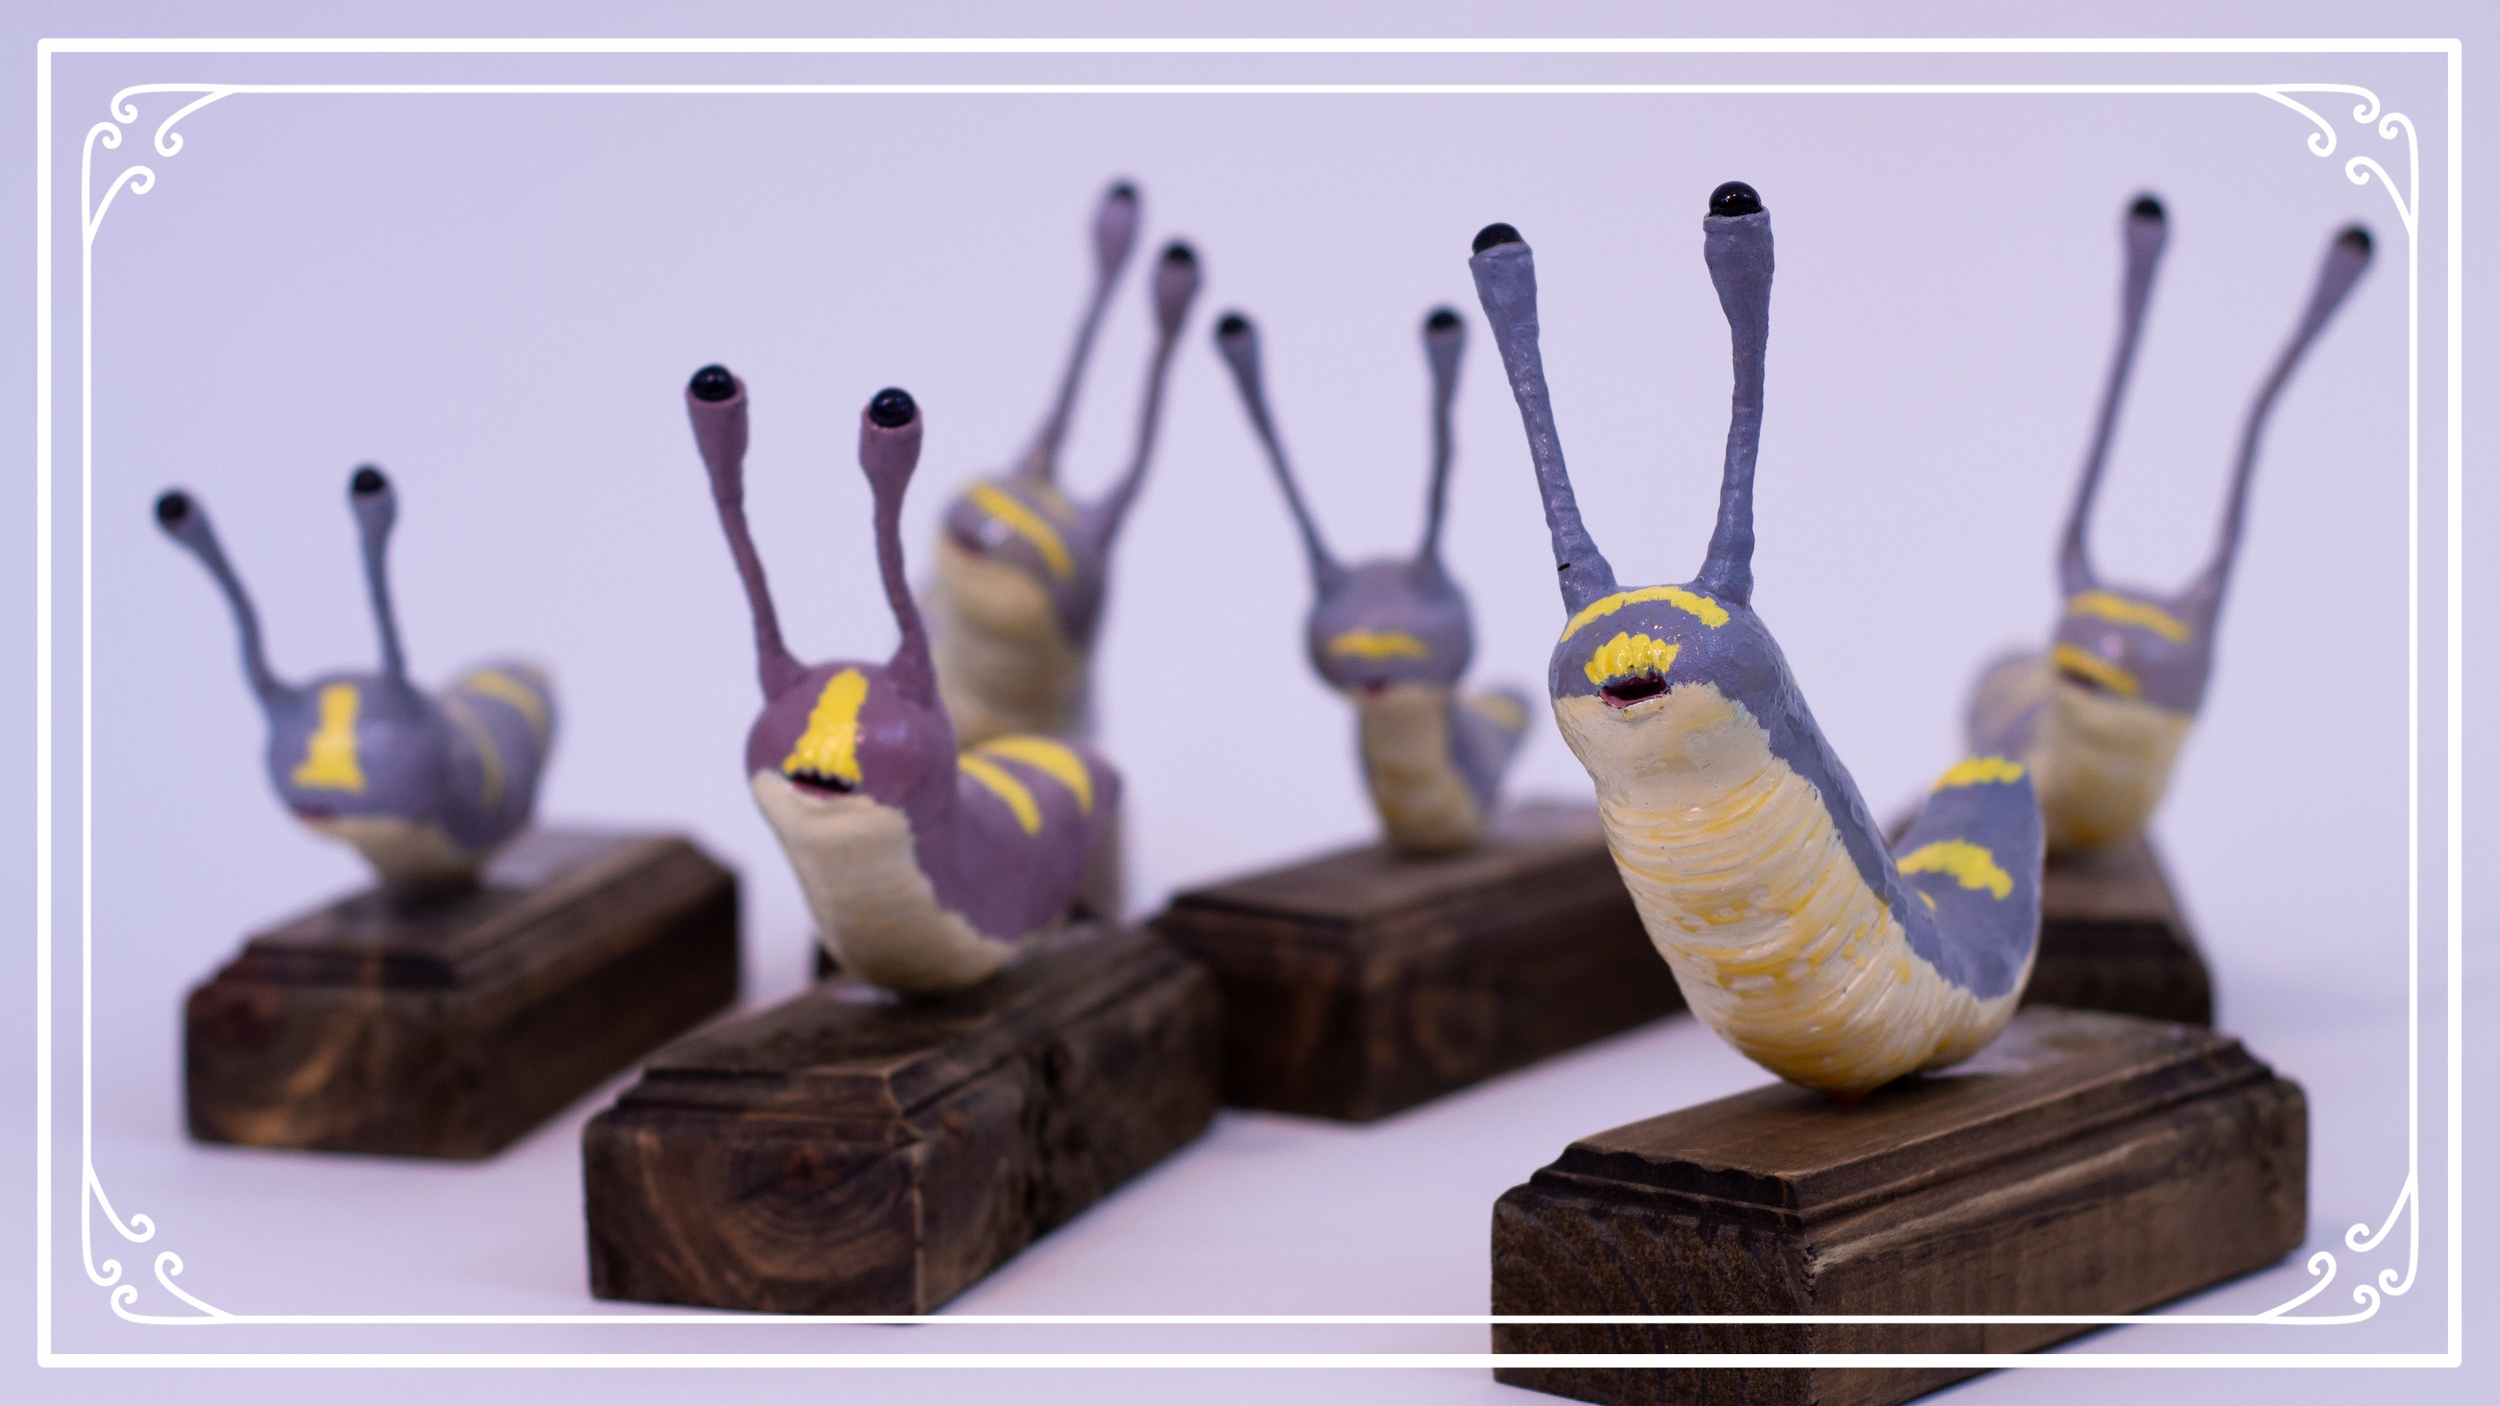 Slimy Slug Sculptures - These slug sculptures can slime their way to your home & heart.